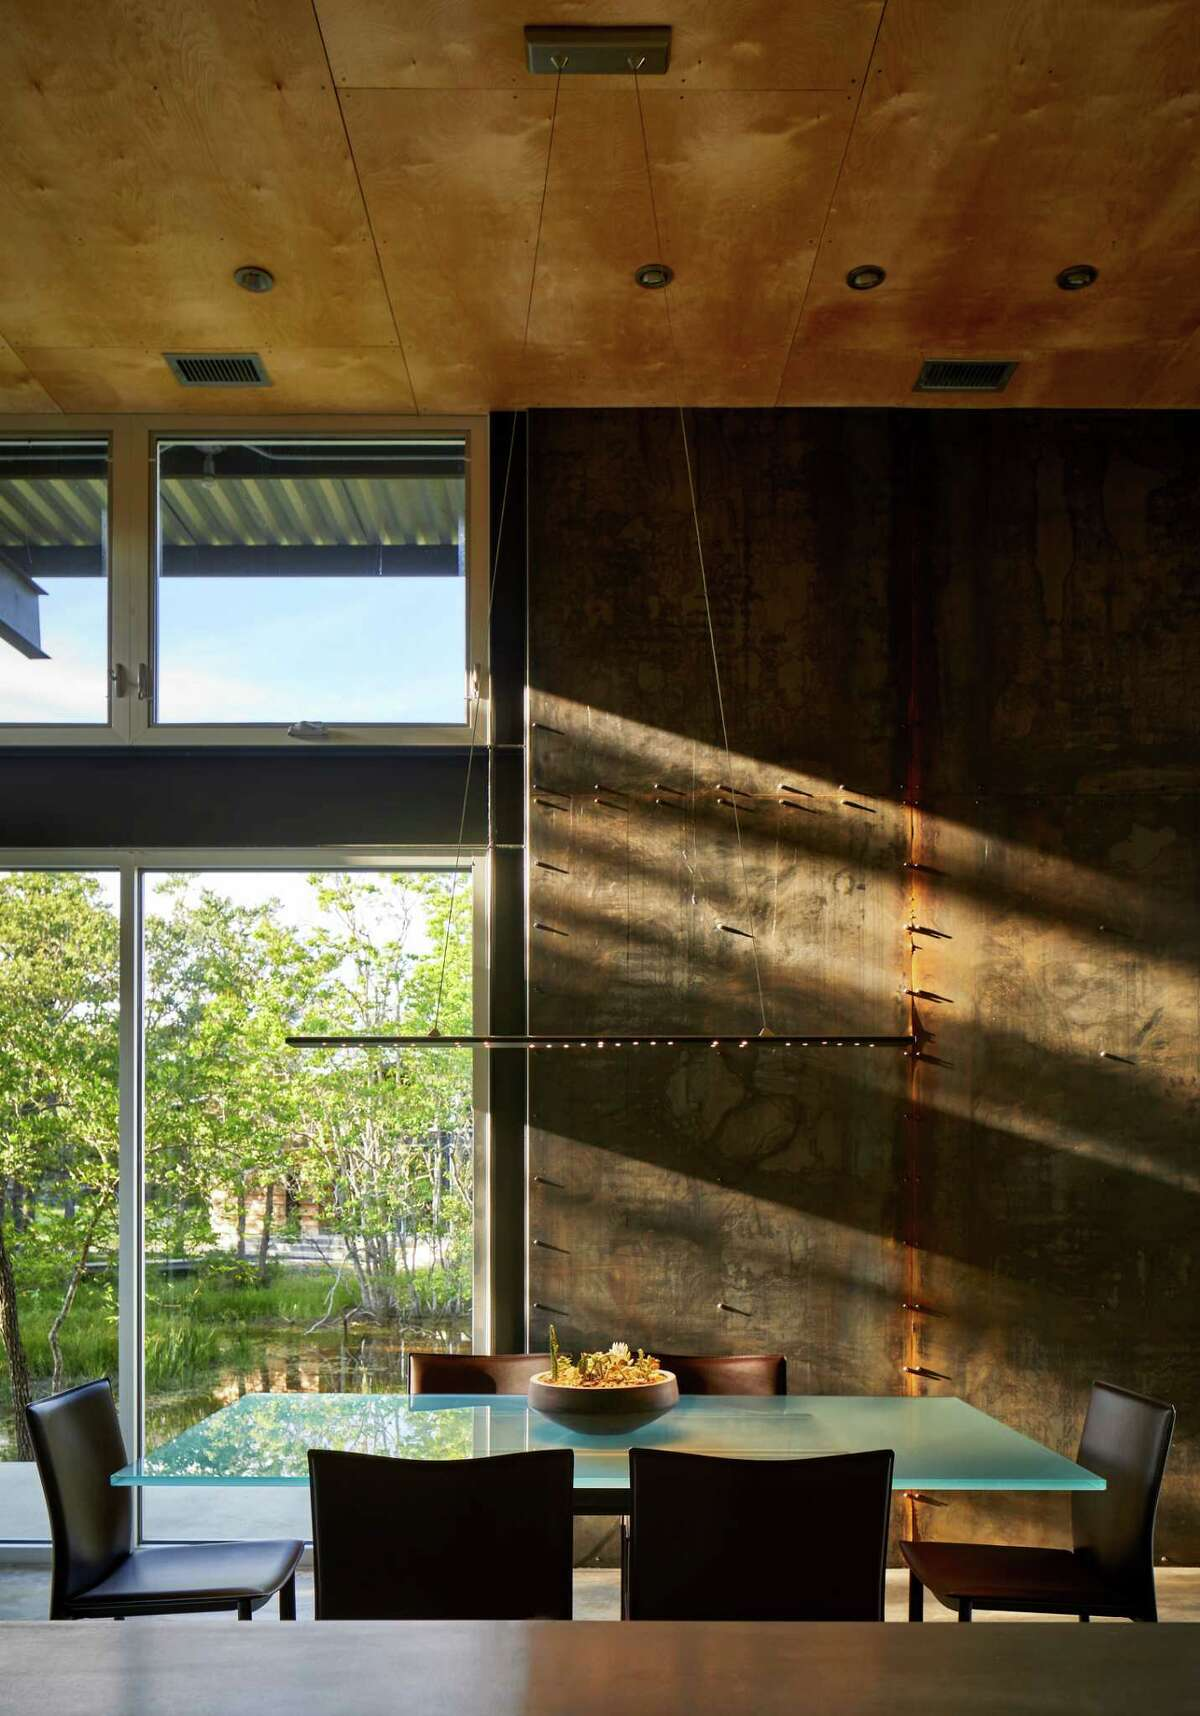 The dining room table is made of glass and Corten steel then surrounded by contemporary brown leather chairs.